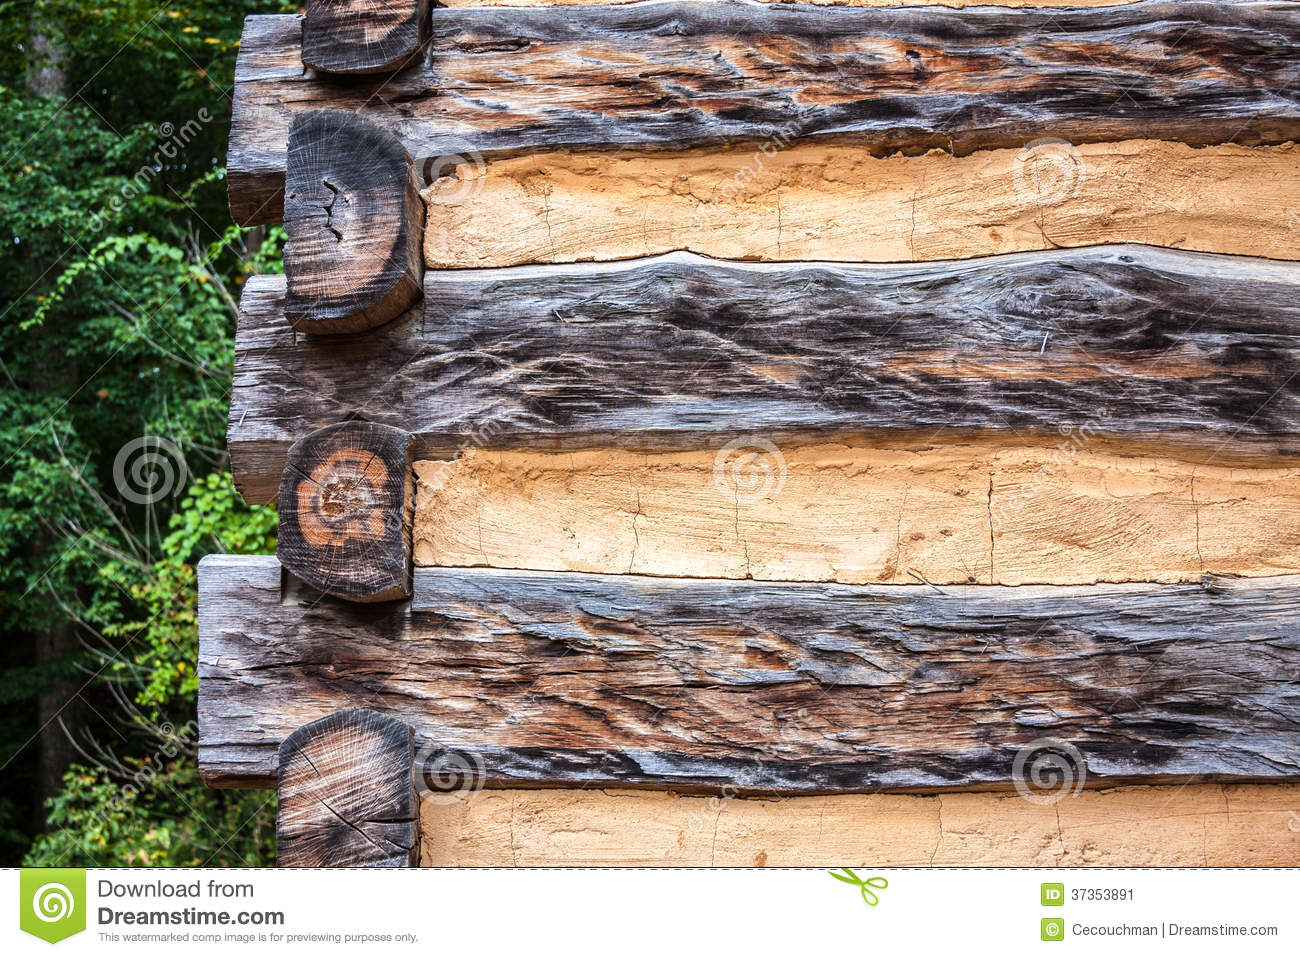 Exterior of corner detail on log cabin showing logs and chinking.